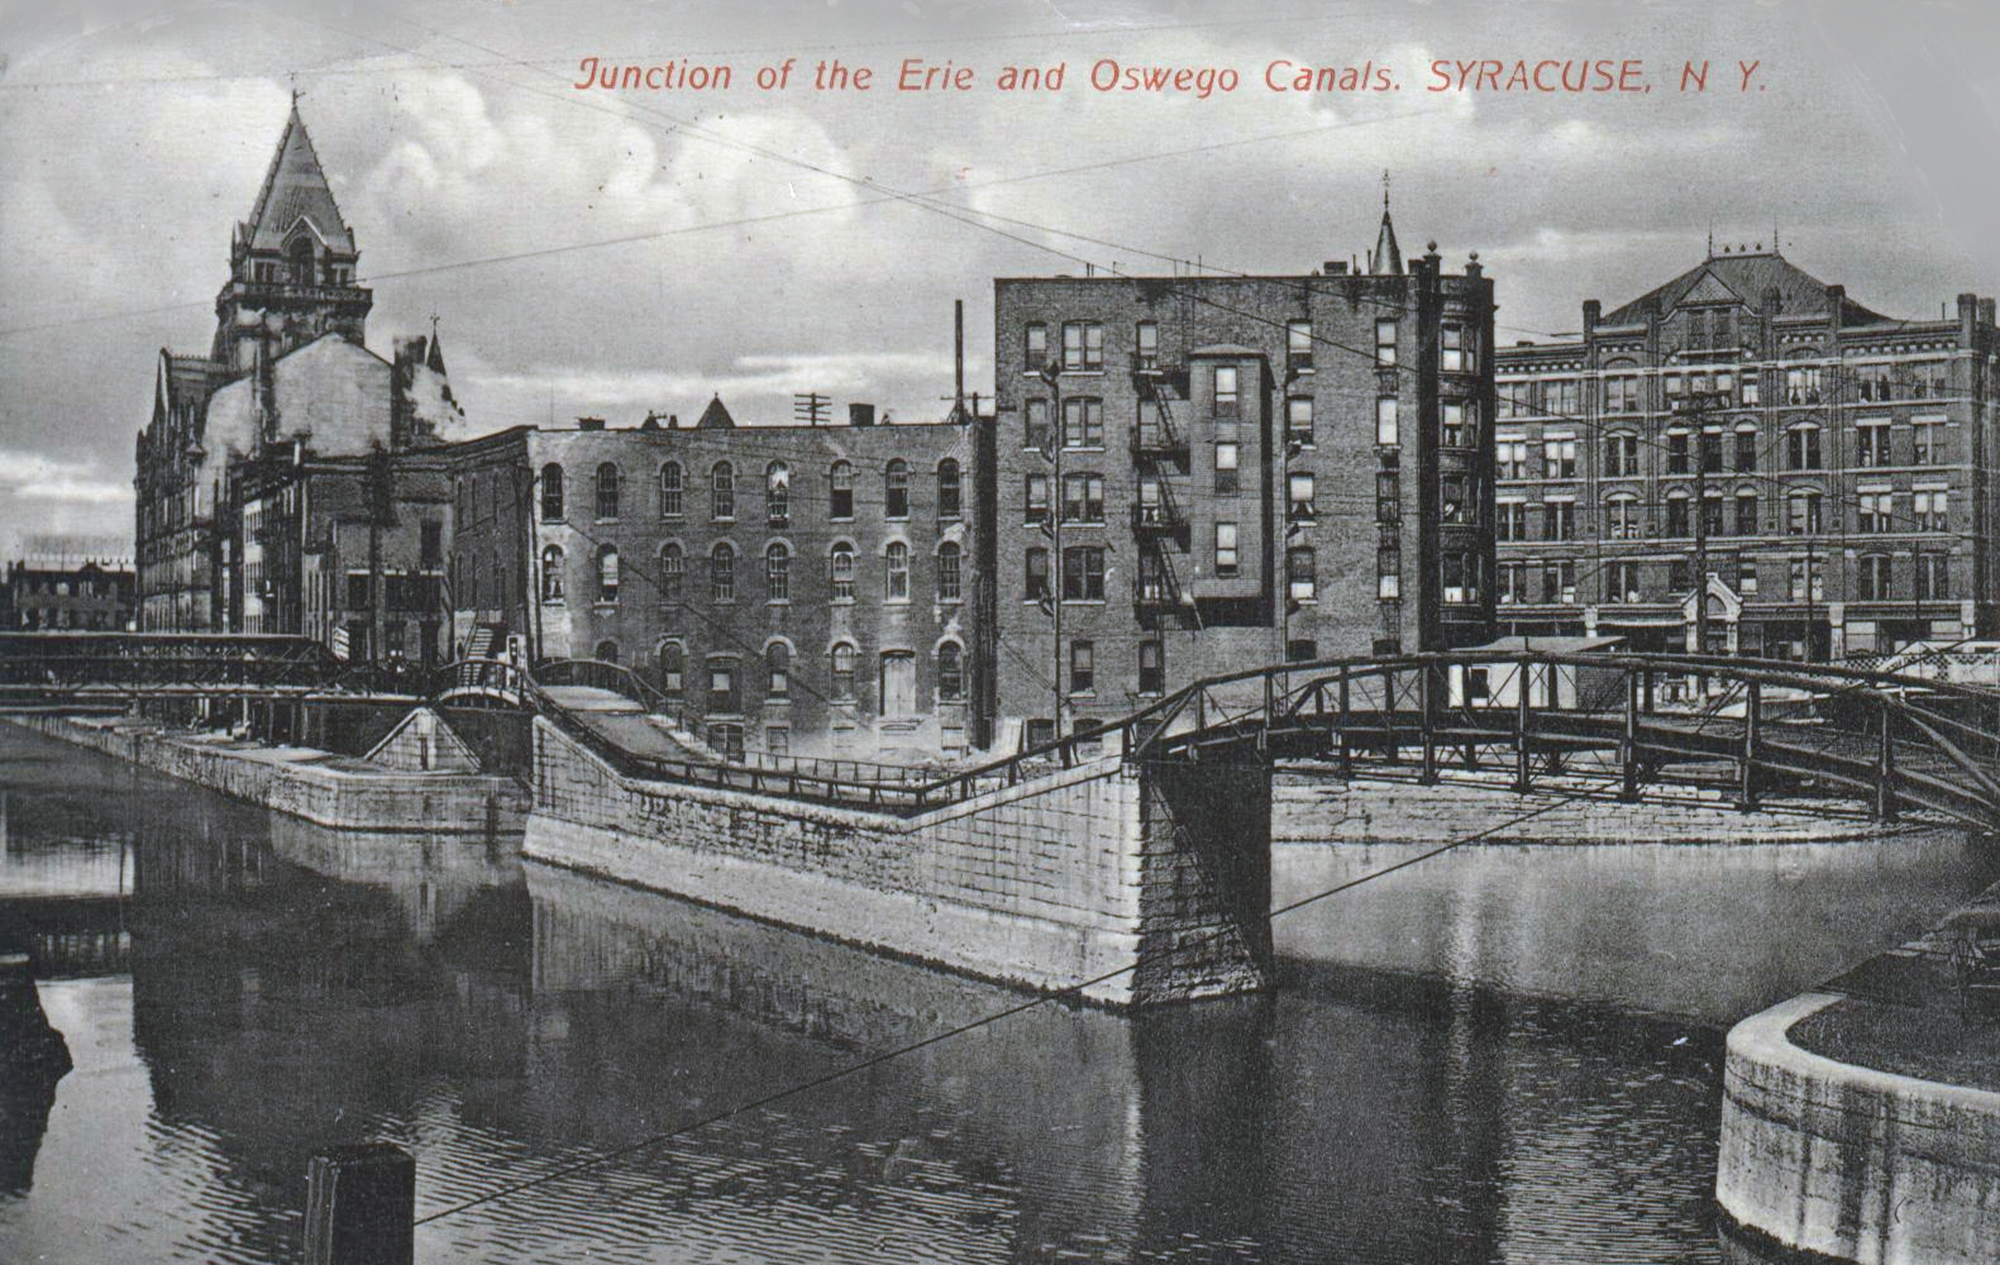 Erie Canal Book - Coming Soon